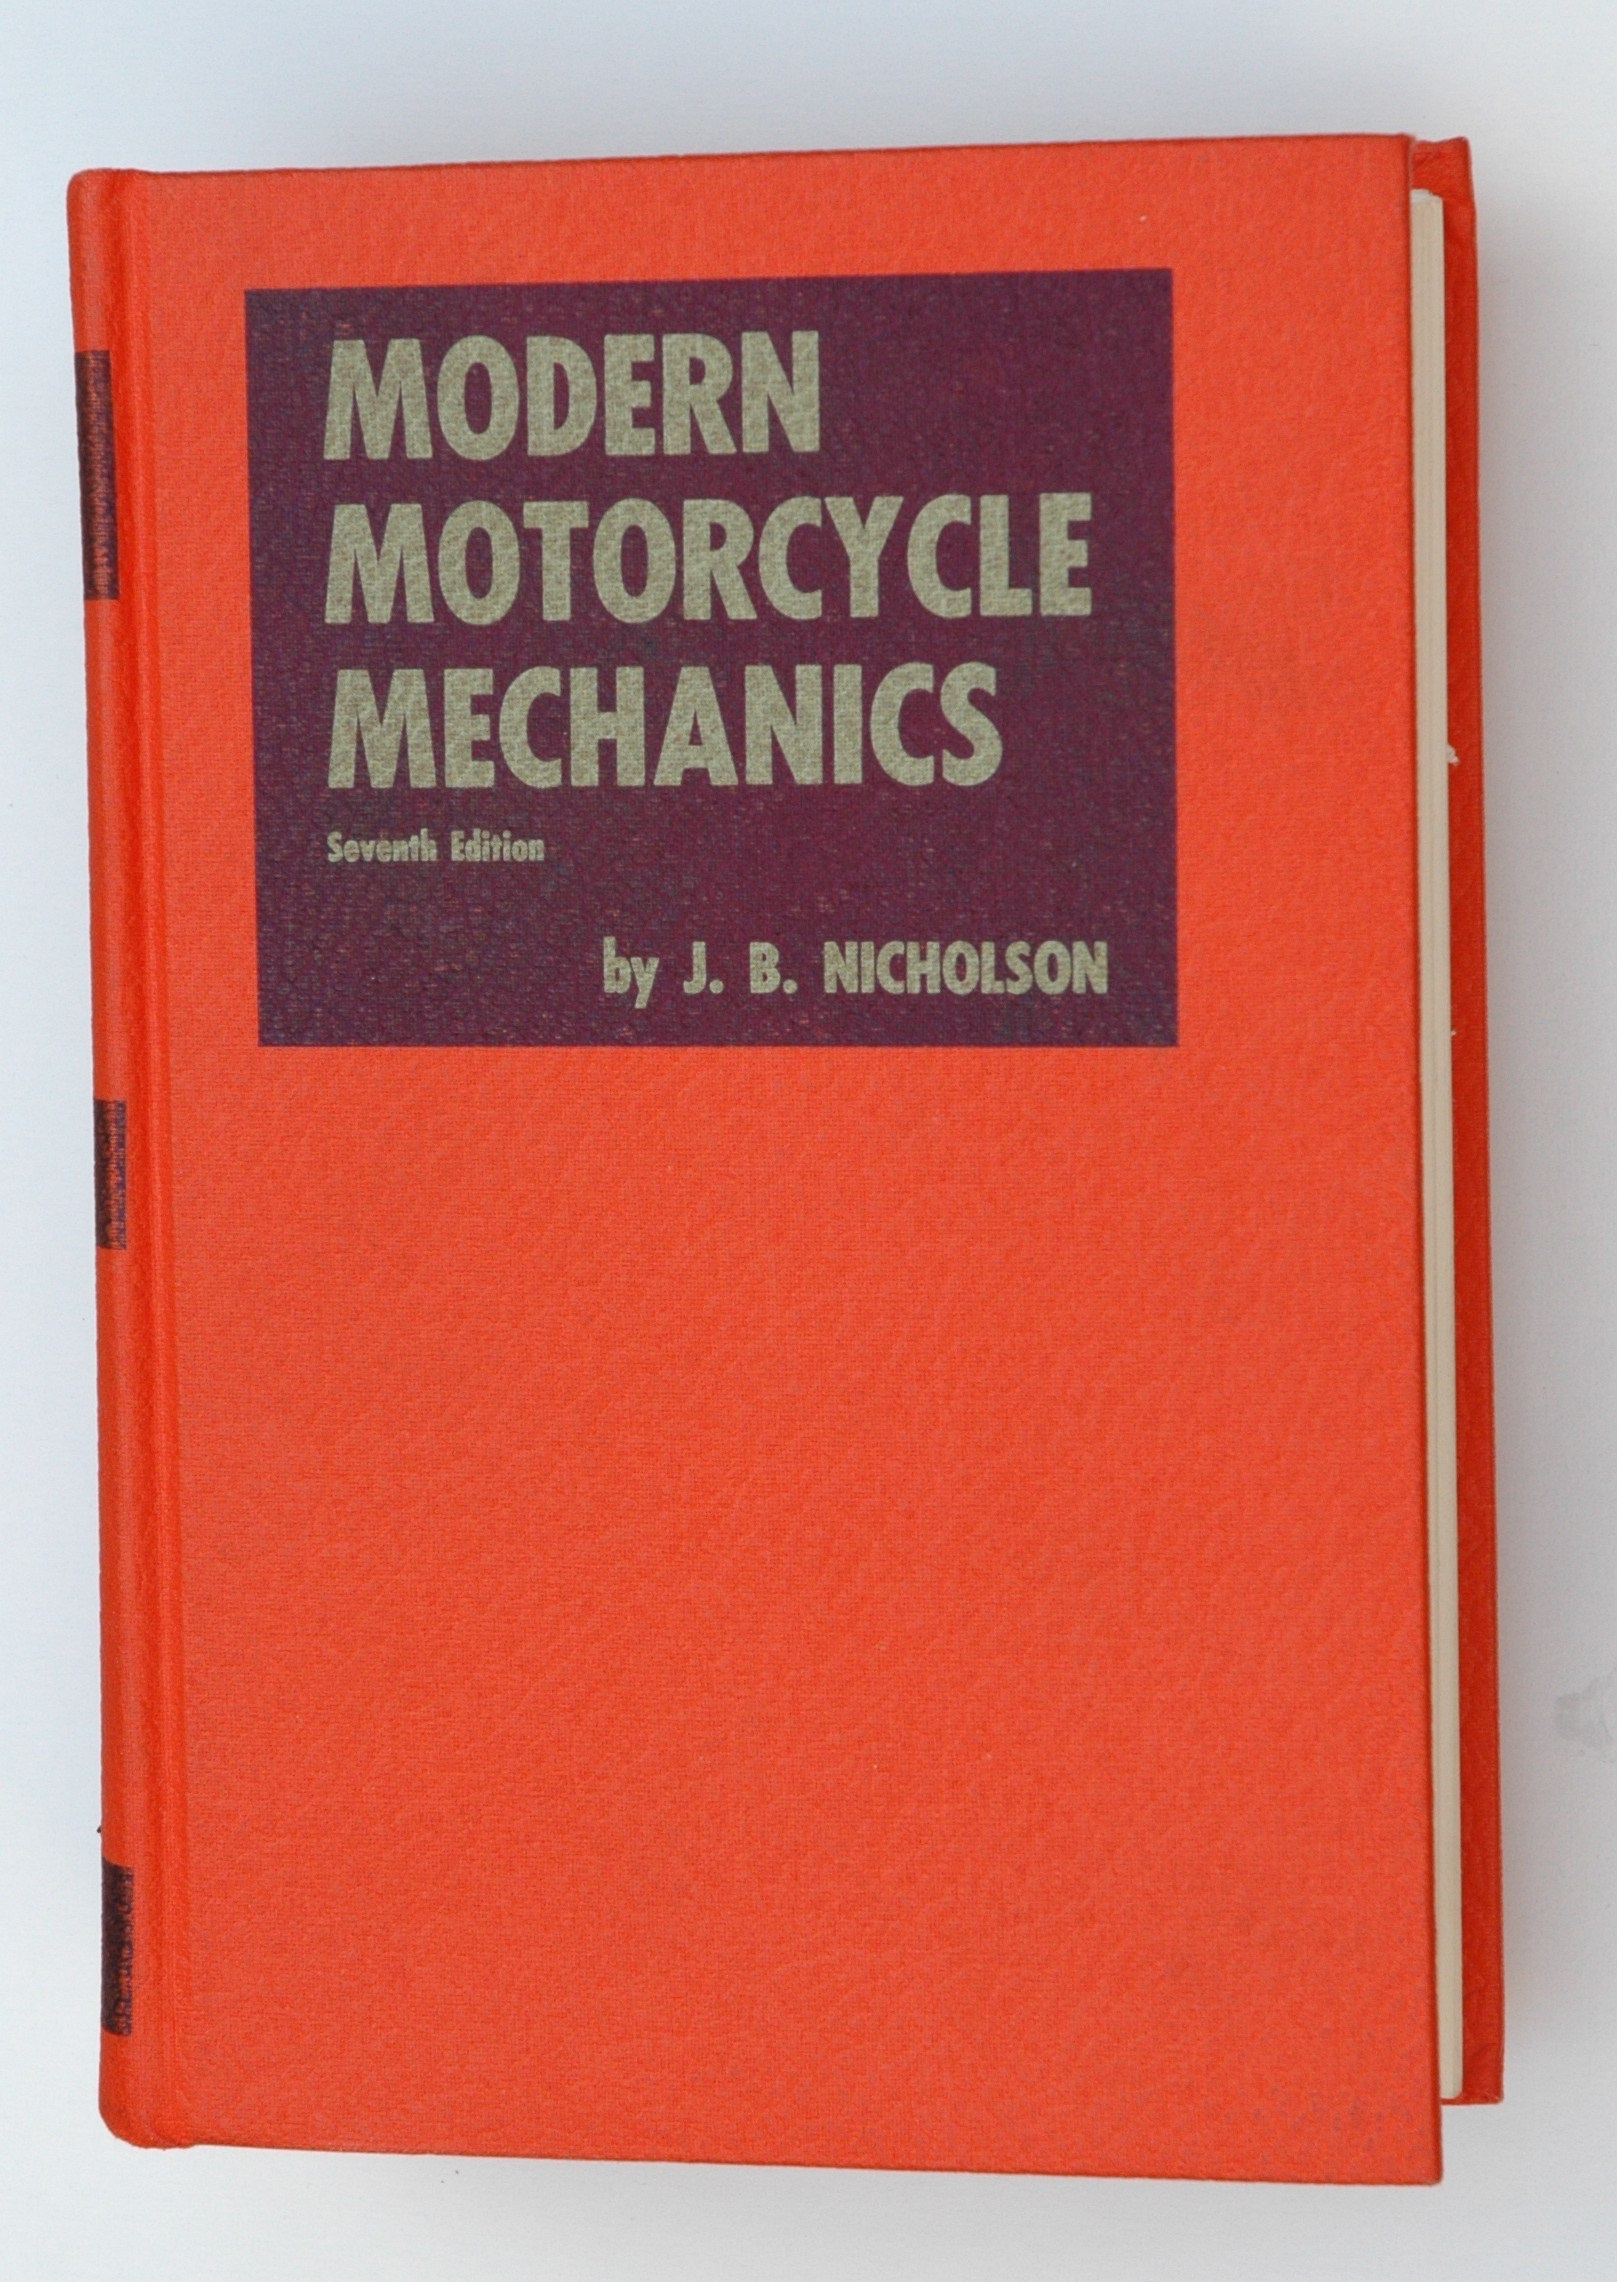 Inherited memories: The unlikely friendship that saved a classic repair  manual - RevZilla